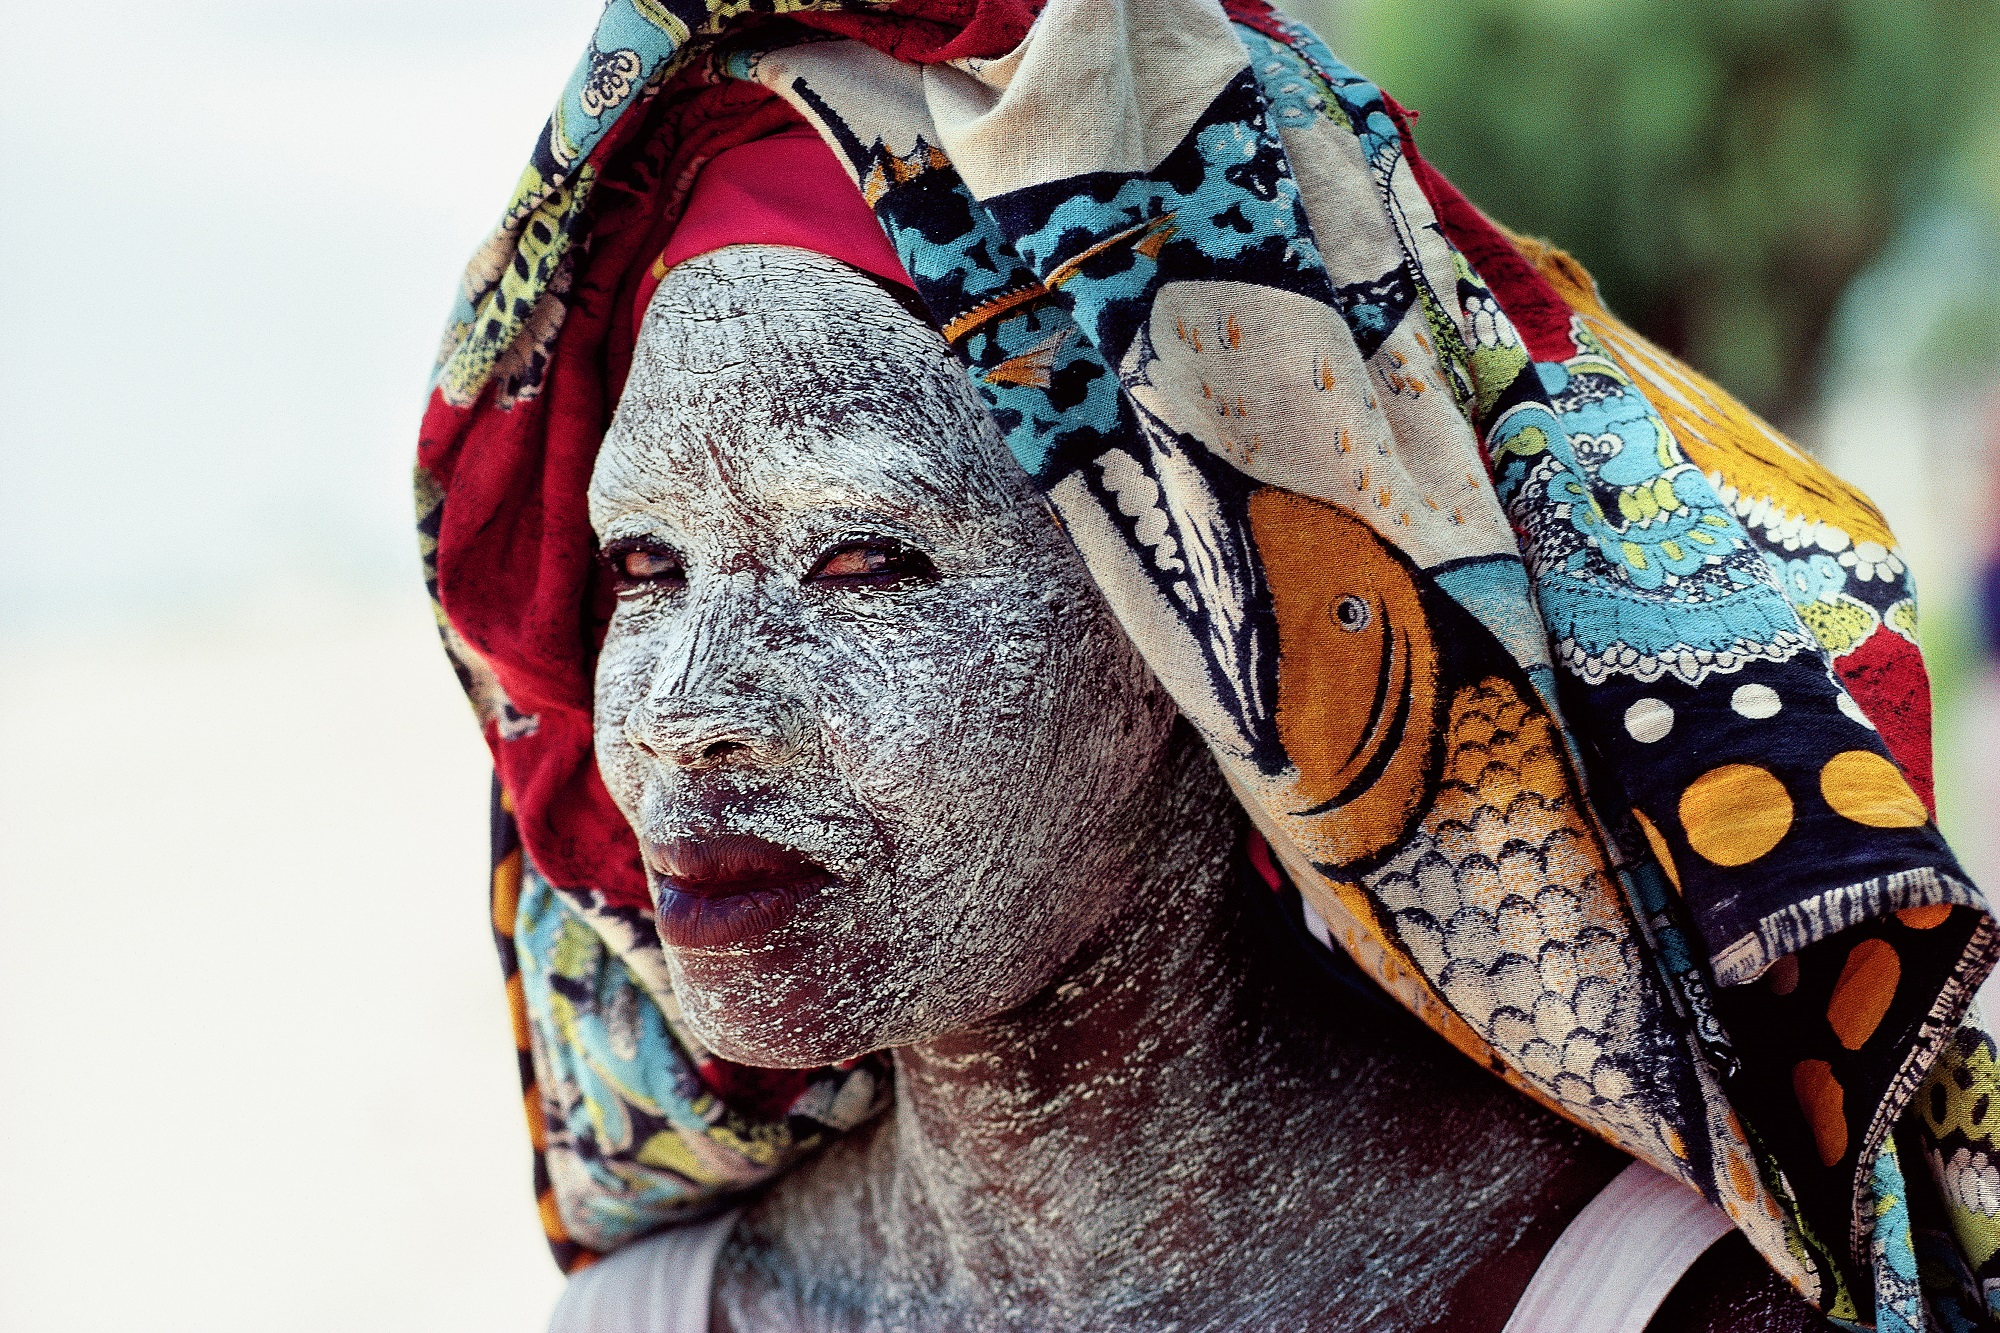 A woman wears ground bark cream to protect her face from the sun.